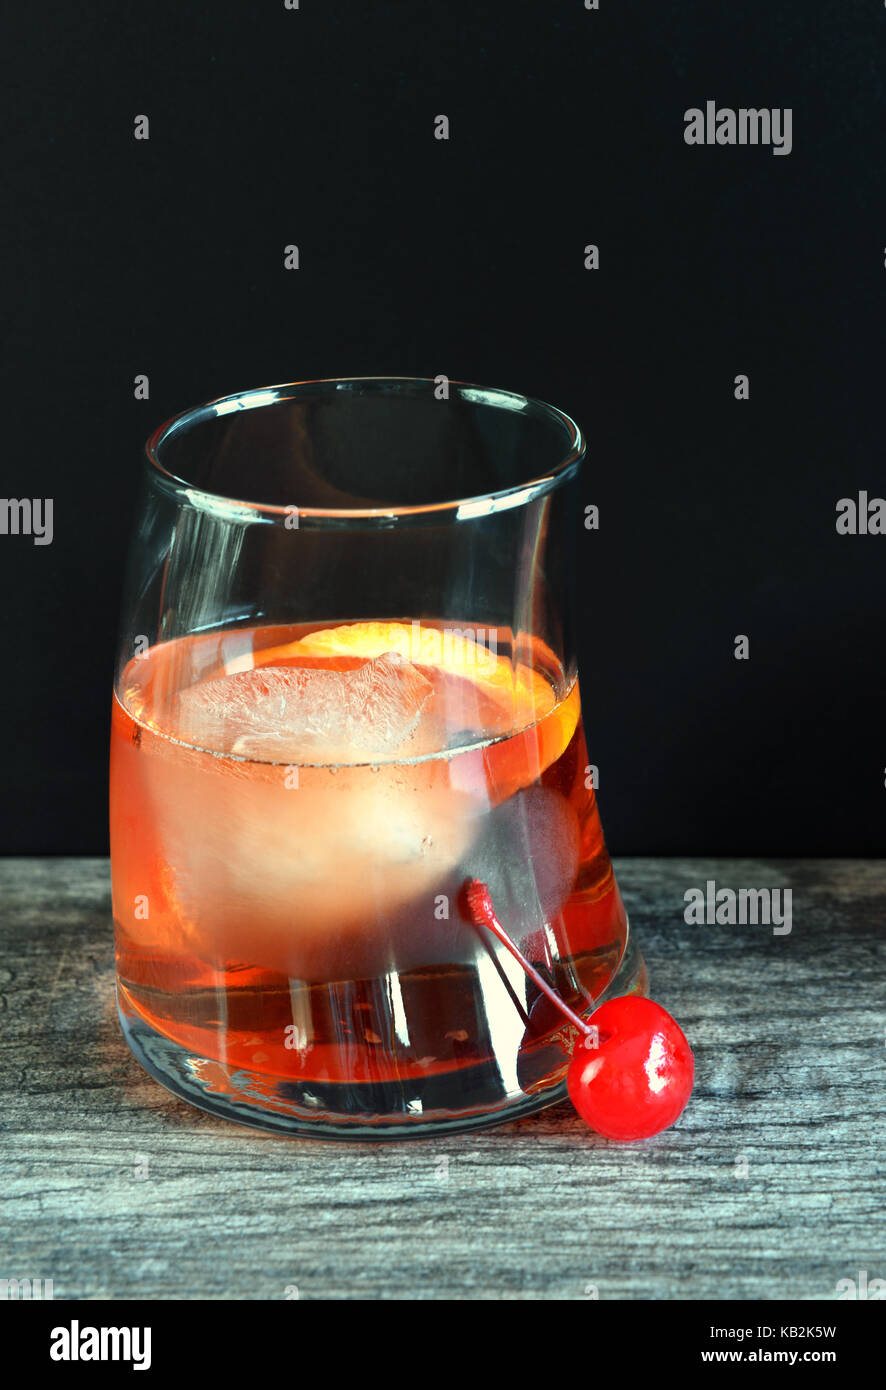 Old fashioned avec de la glace dans le verre à cocktail Photo Stock